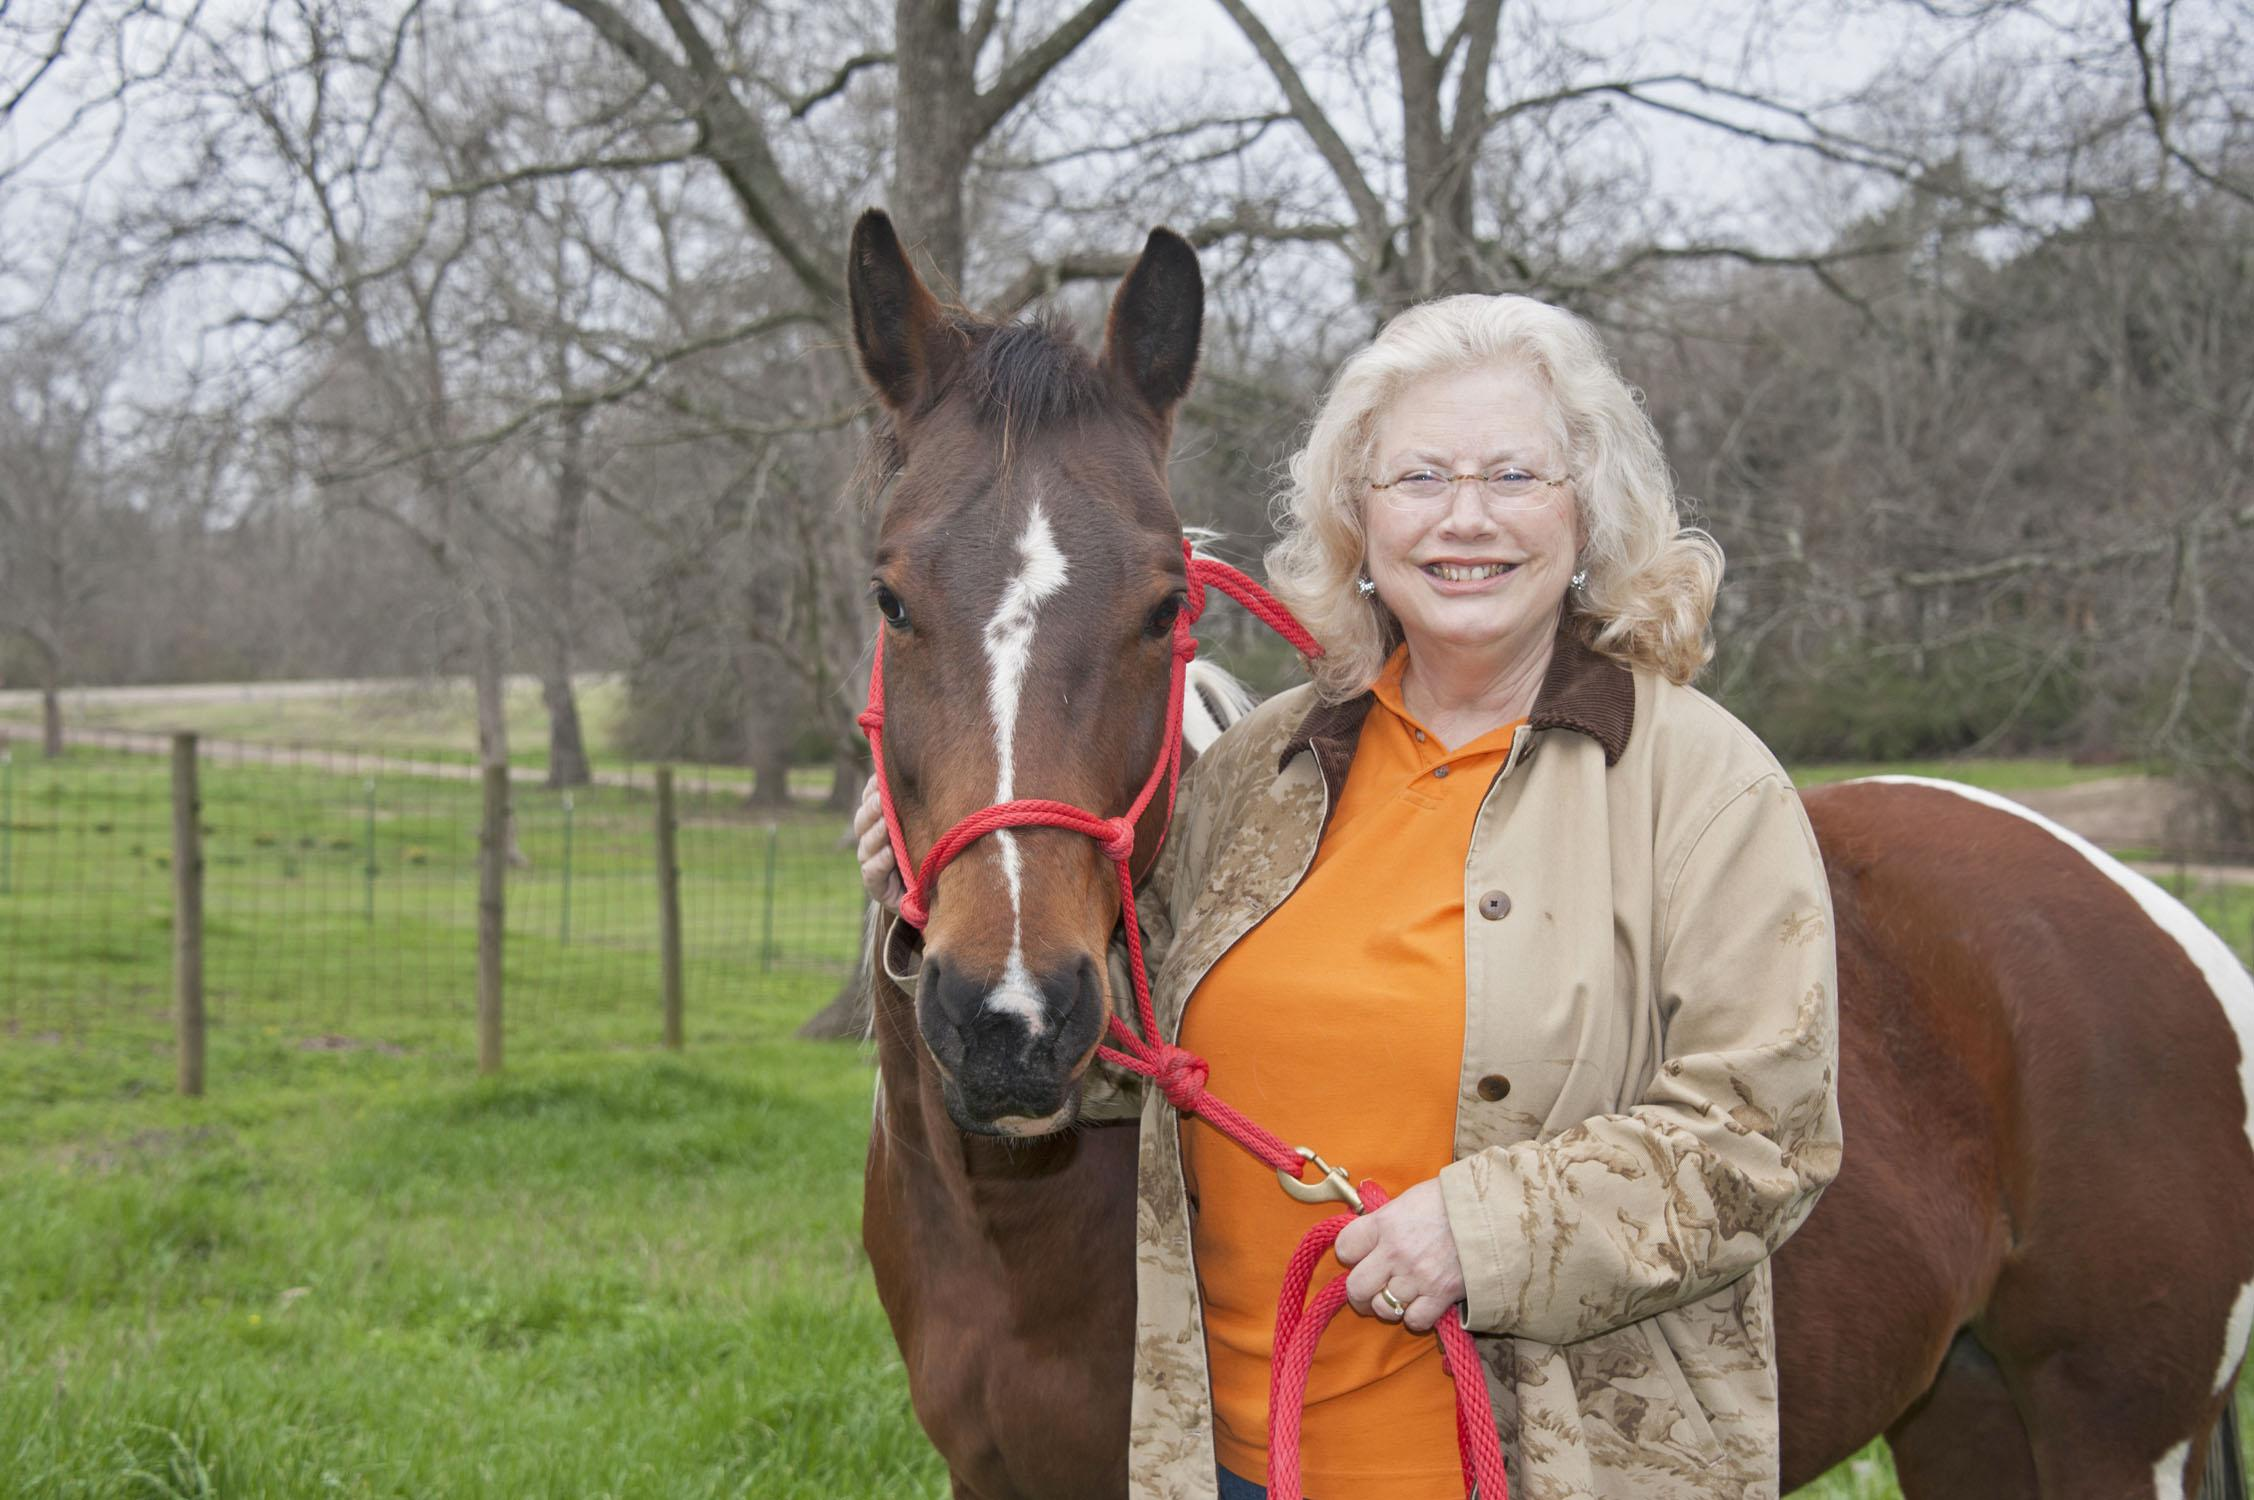 Virginia Mathews' lifelong love of horses launched her career with the animals. The Yazoo County entrepreneur is a member of Women for Agriculture. (Photo by MSU Ag Communications/Kat Lawrence)